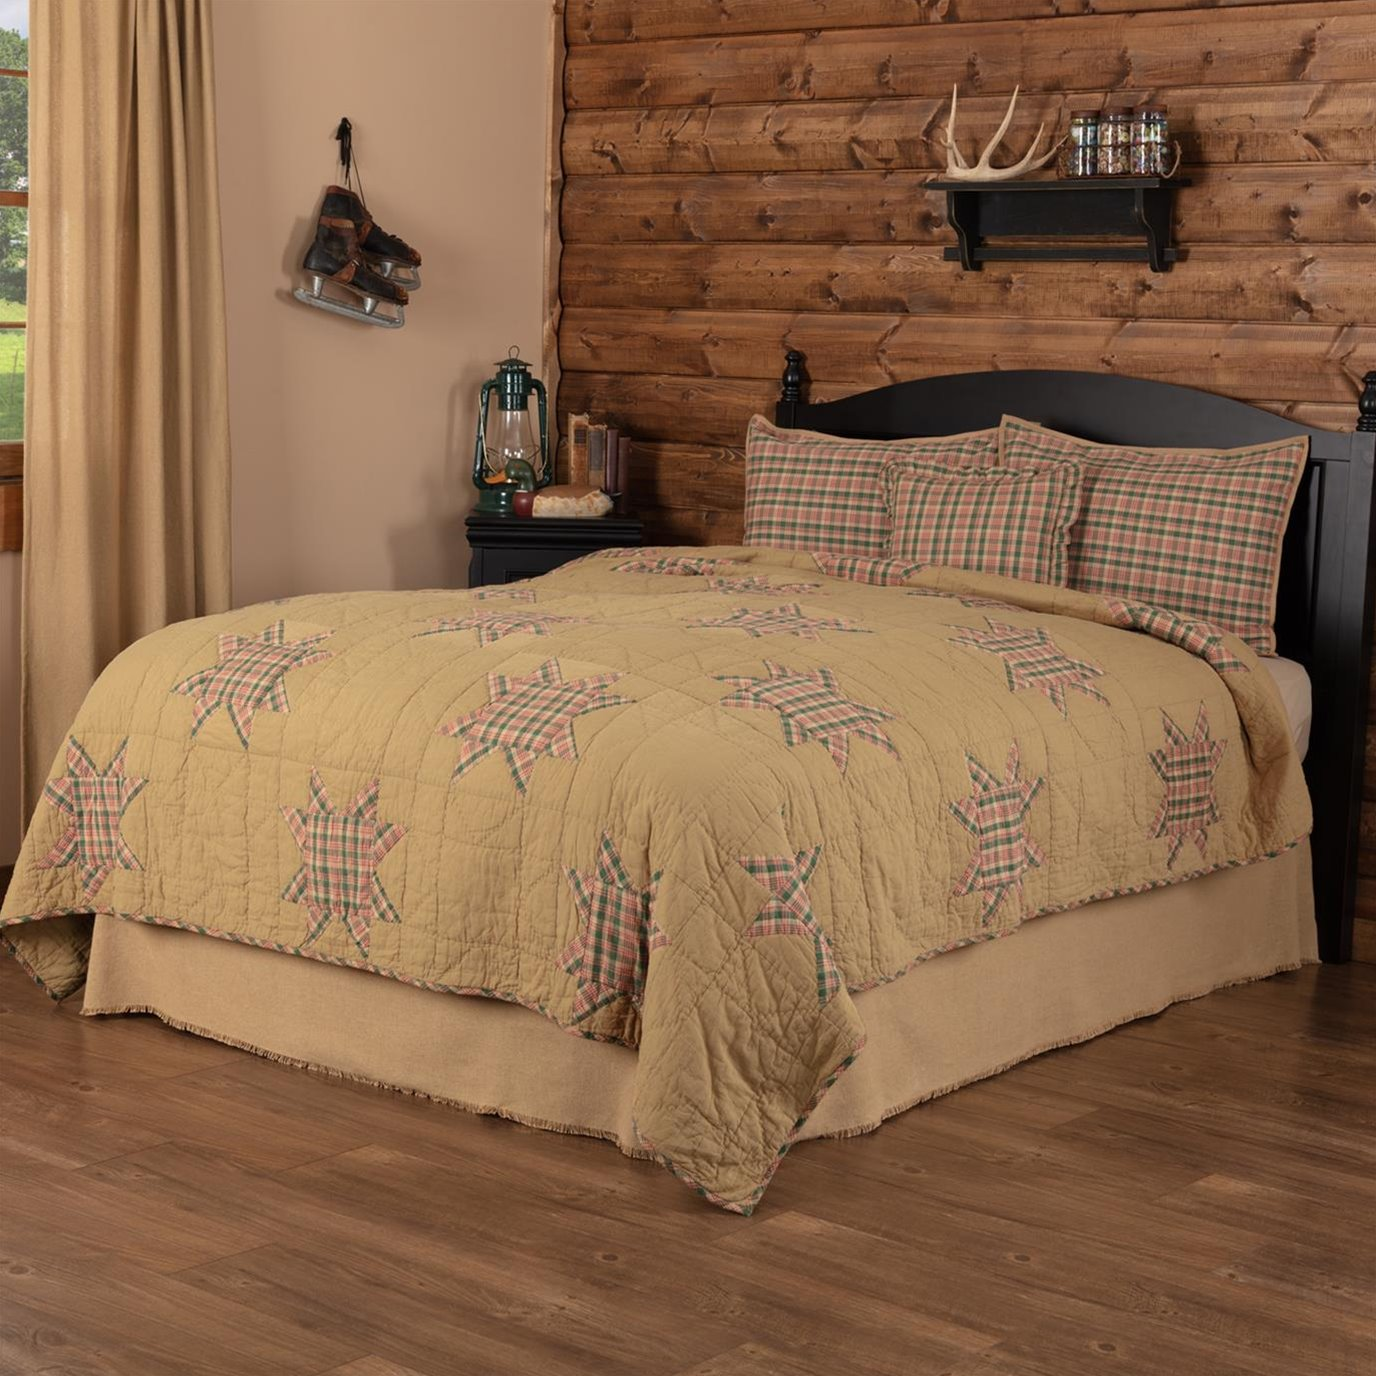 Rustic Star Queen Quilt Set; 1-Quilt 90Wx90L w/2 Shams 21x27, 1-Pillow Cover 16x16